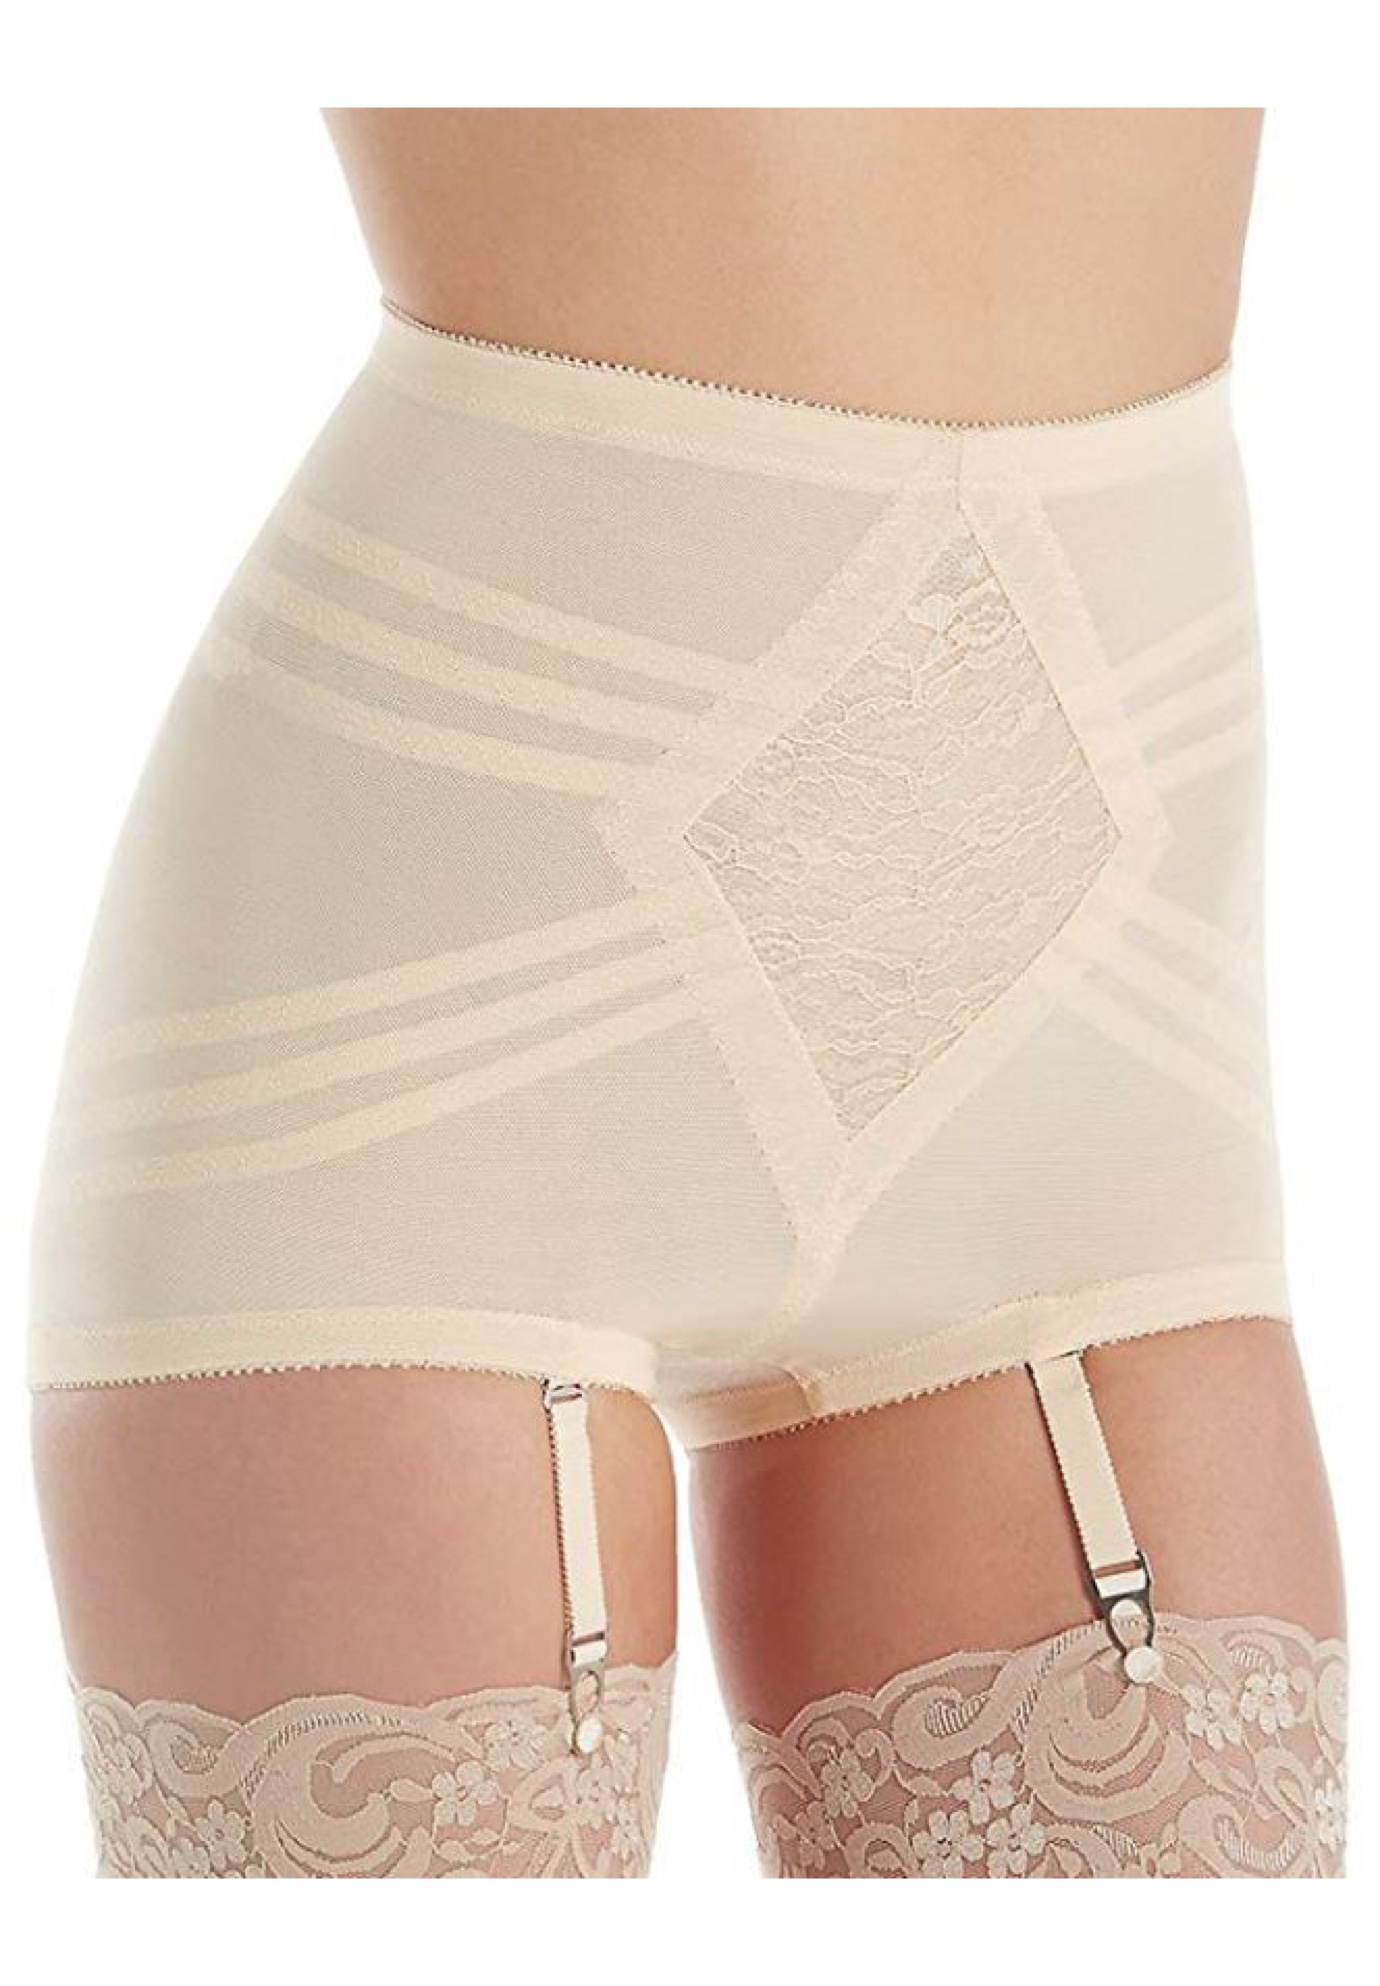 Shapette Panty Brief,